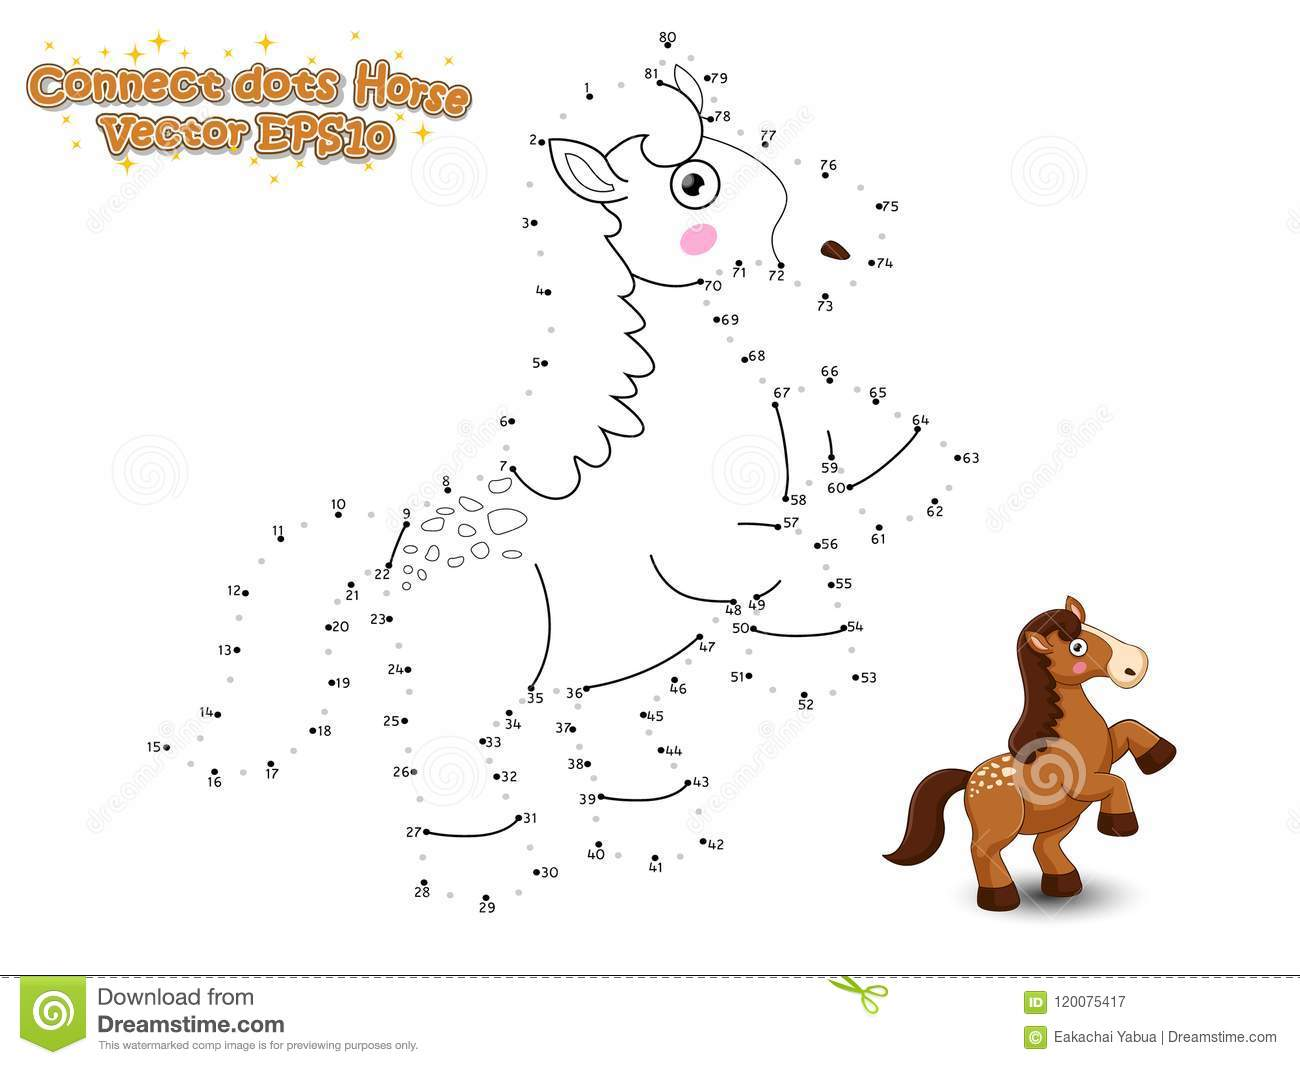 Connect The Dots And Draw Cute Cartoon Horse Educational